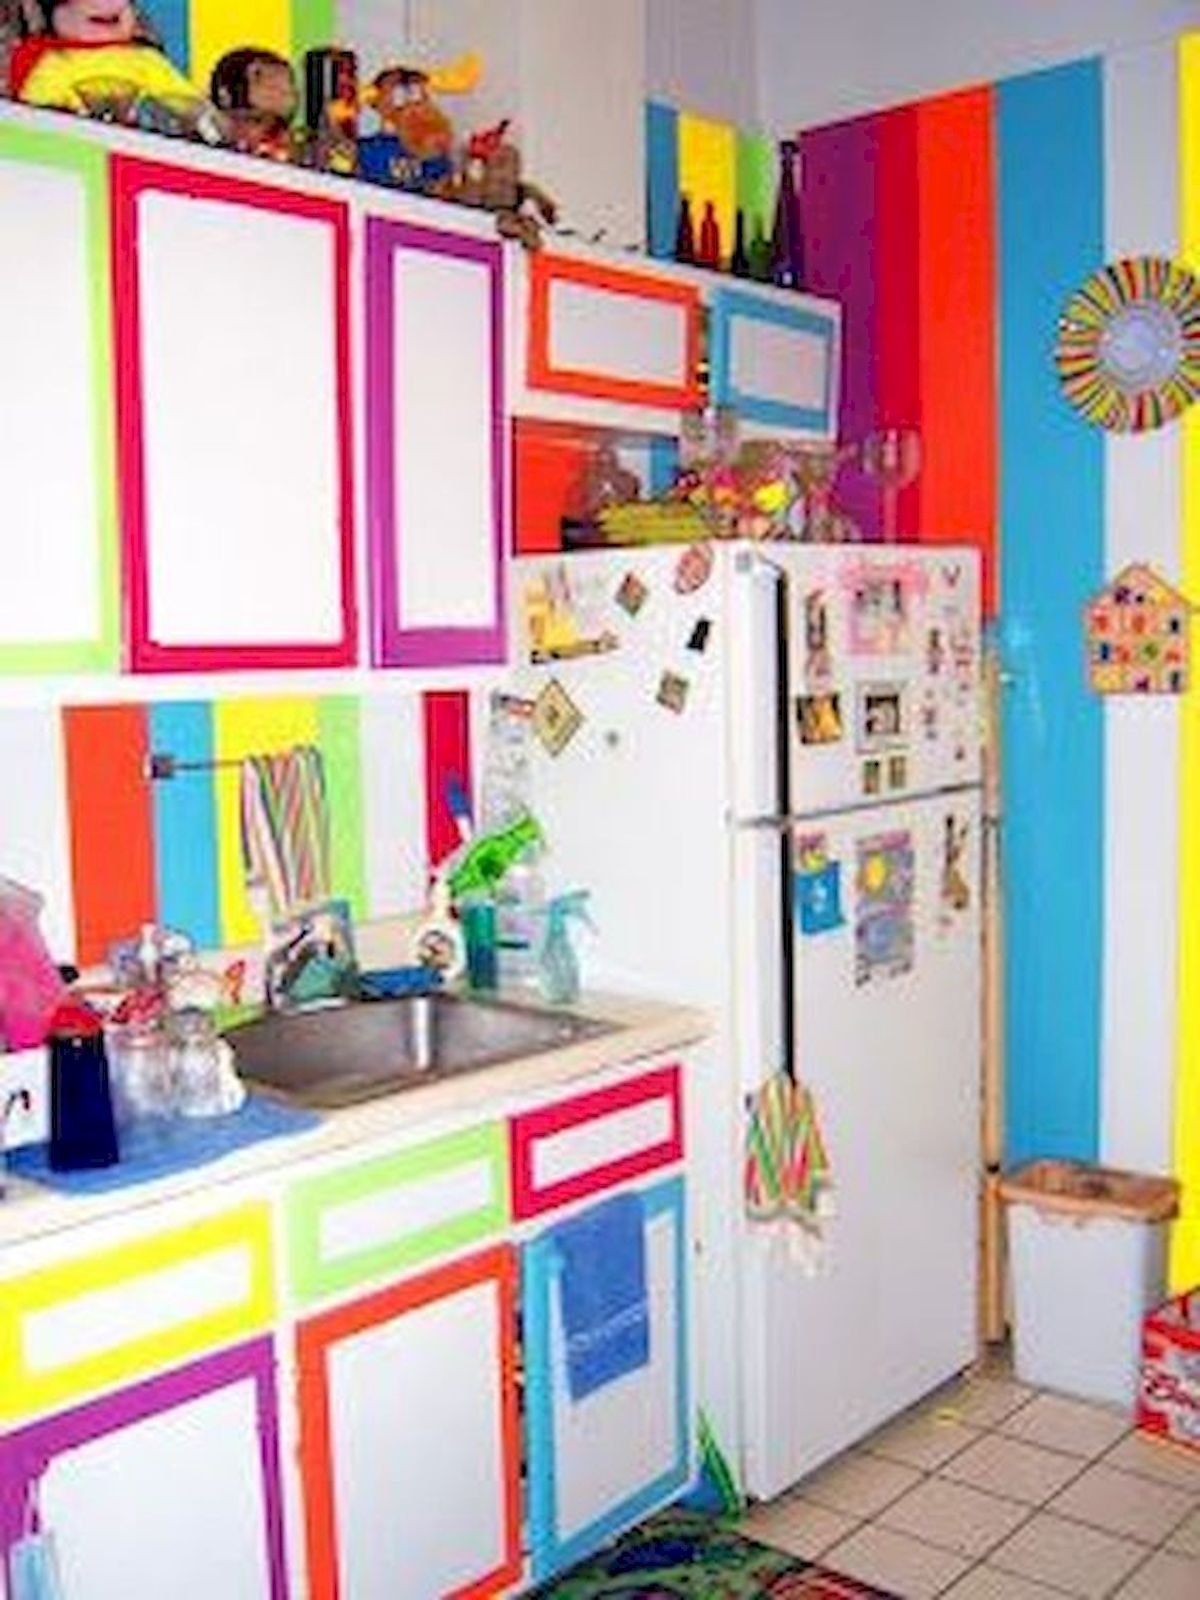 90 Amazing Kitchen Remodel and Decor Ideas With Colorful Design (90)